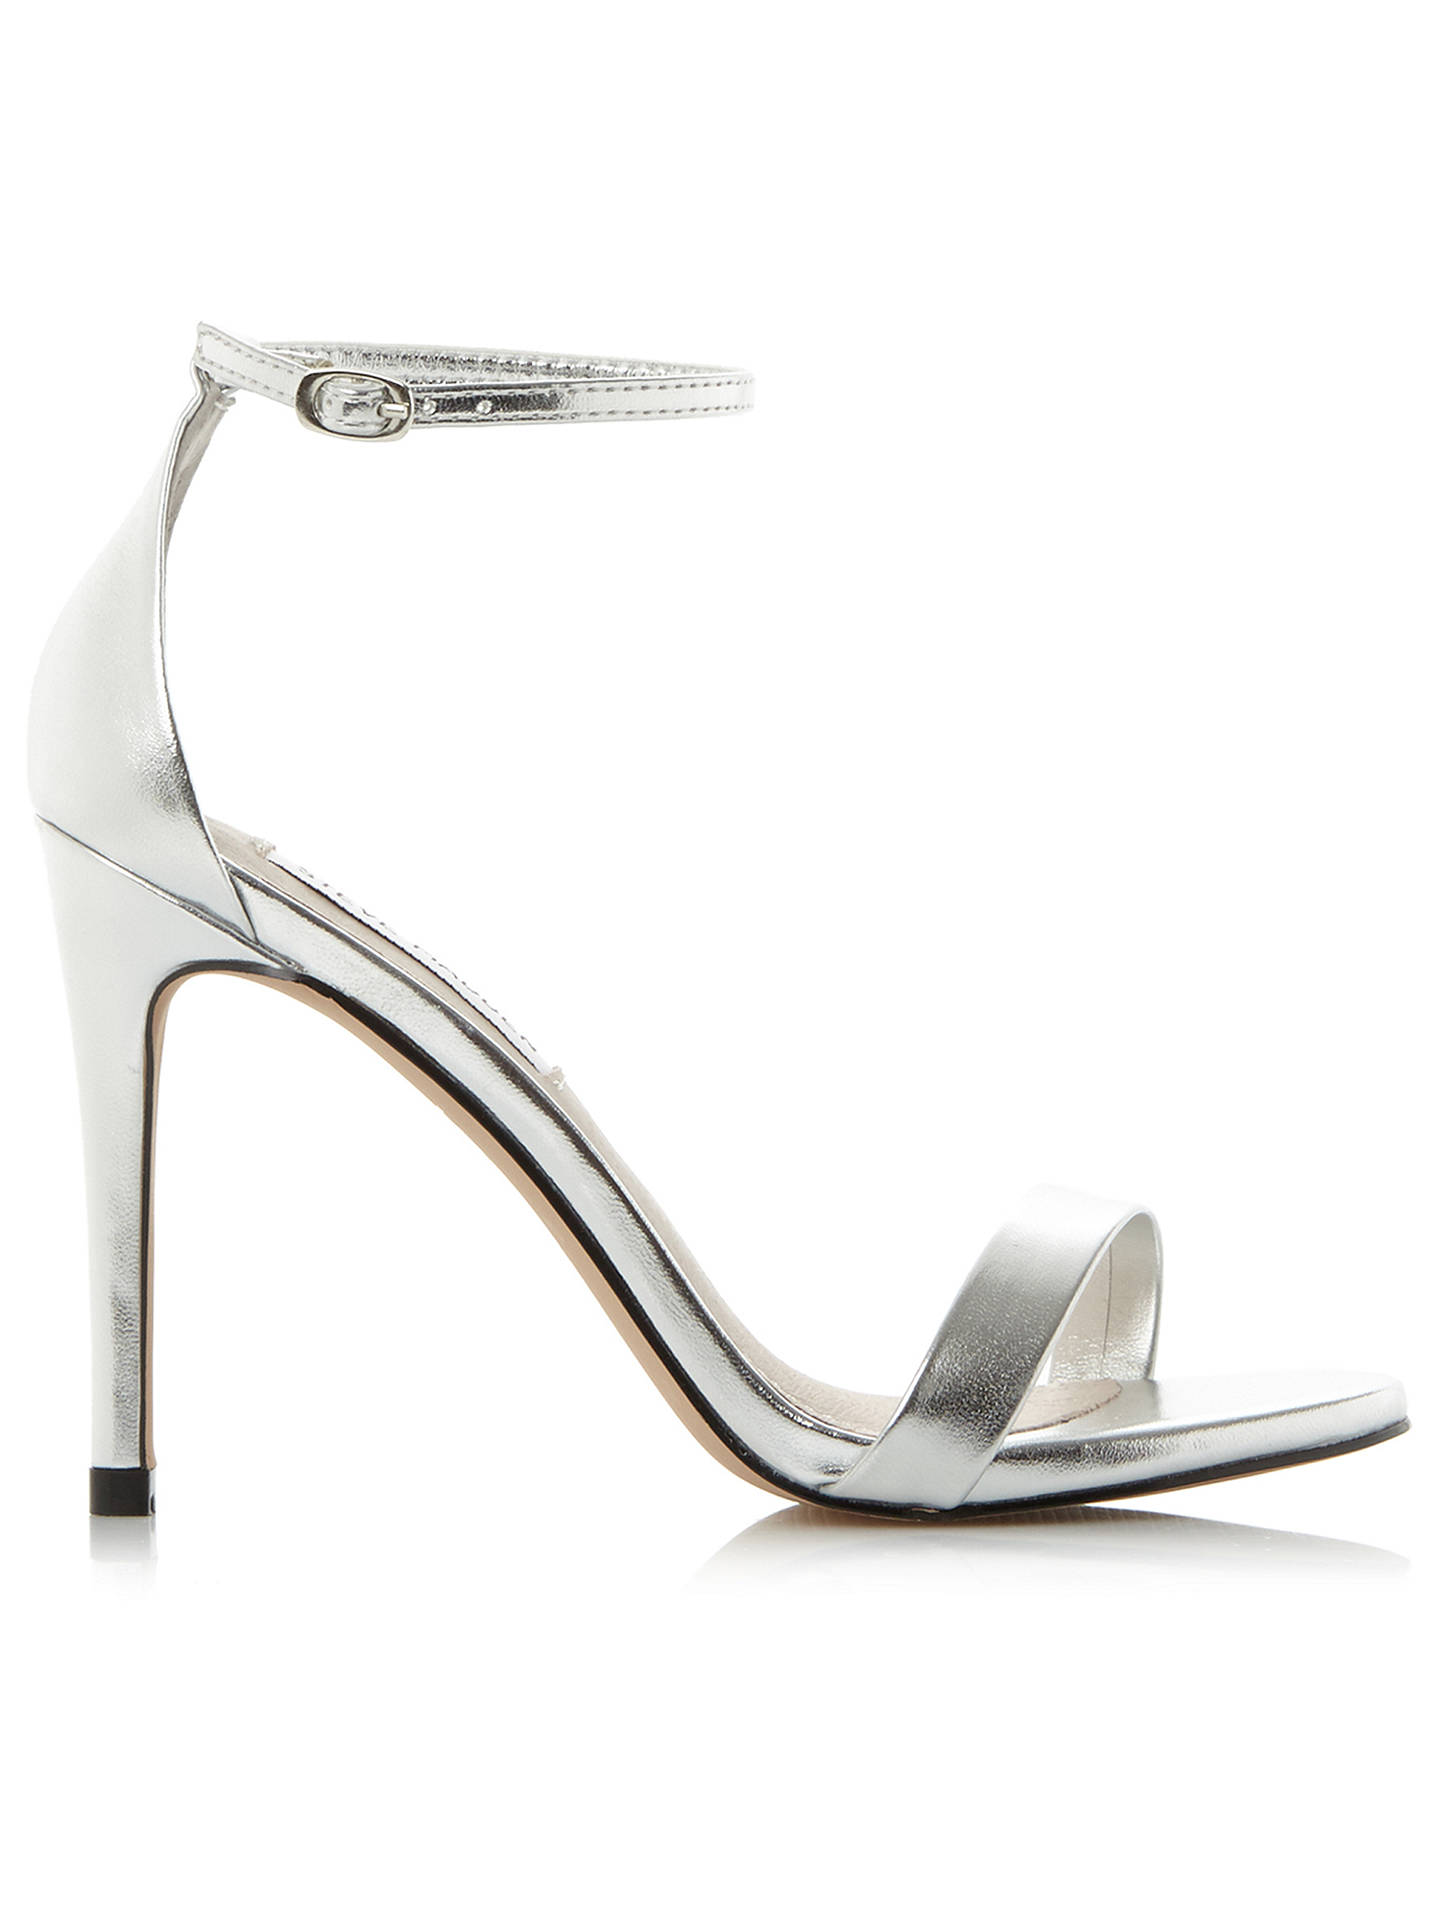 8fa1d831070 Steve Madden Stecy Stiletto Sandals at John Lewis   Partners